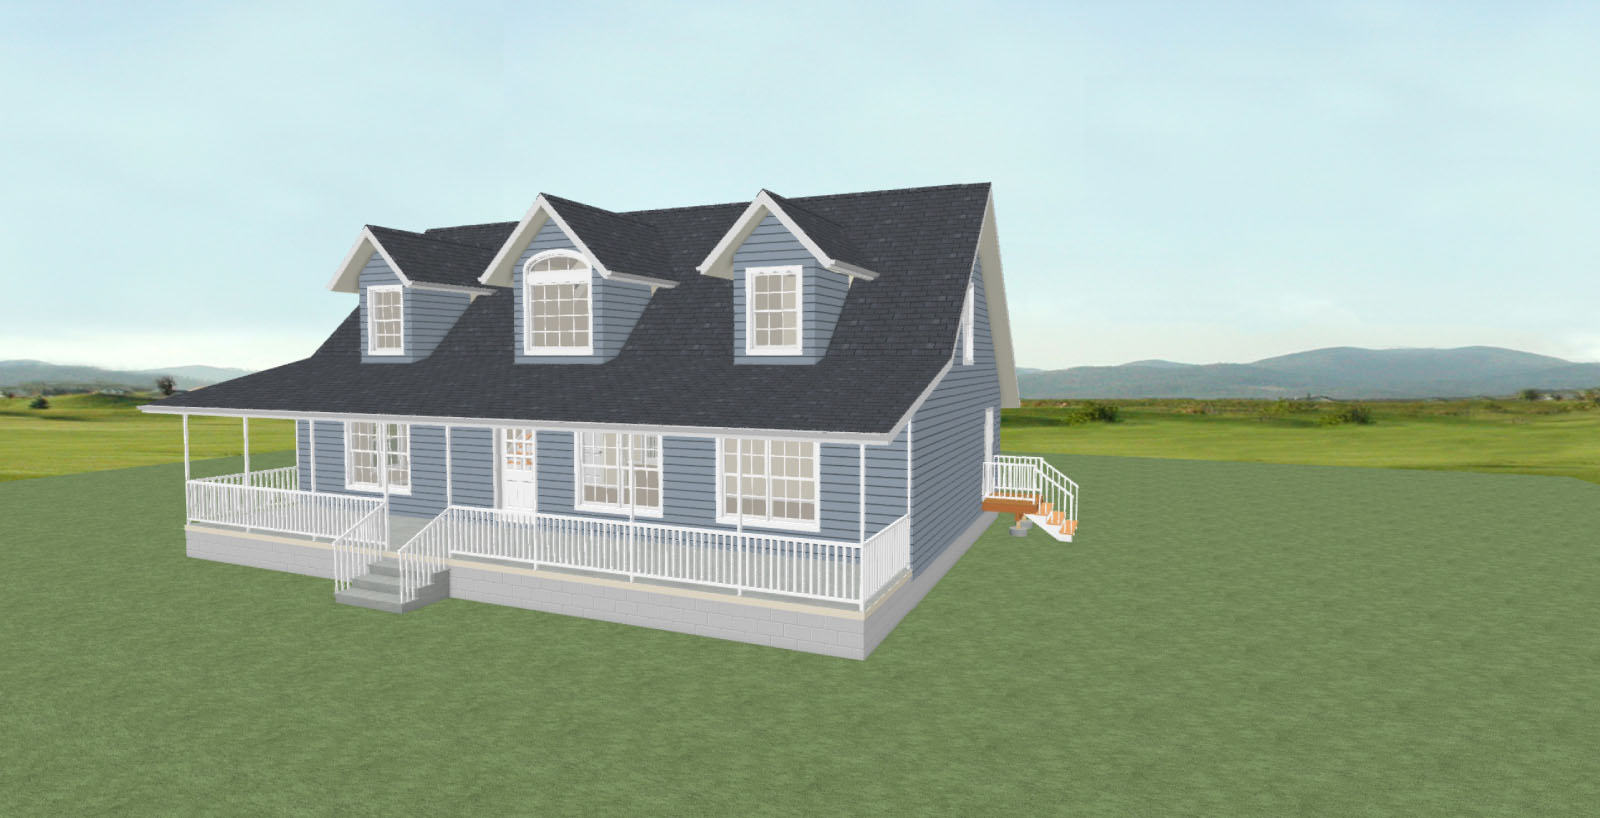 Rendered house design for two-story farmhouse style home